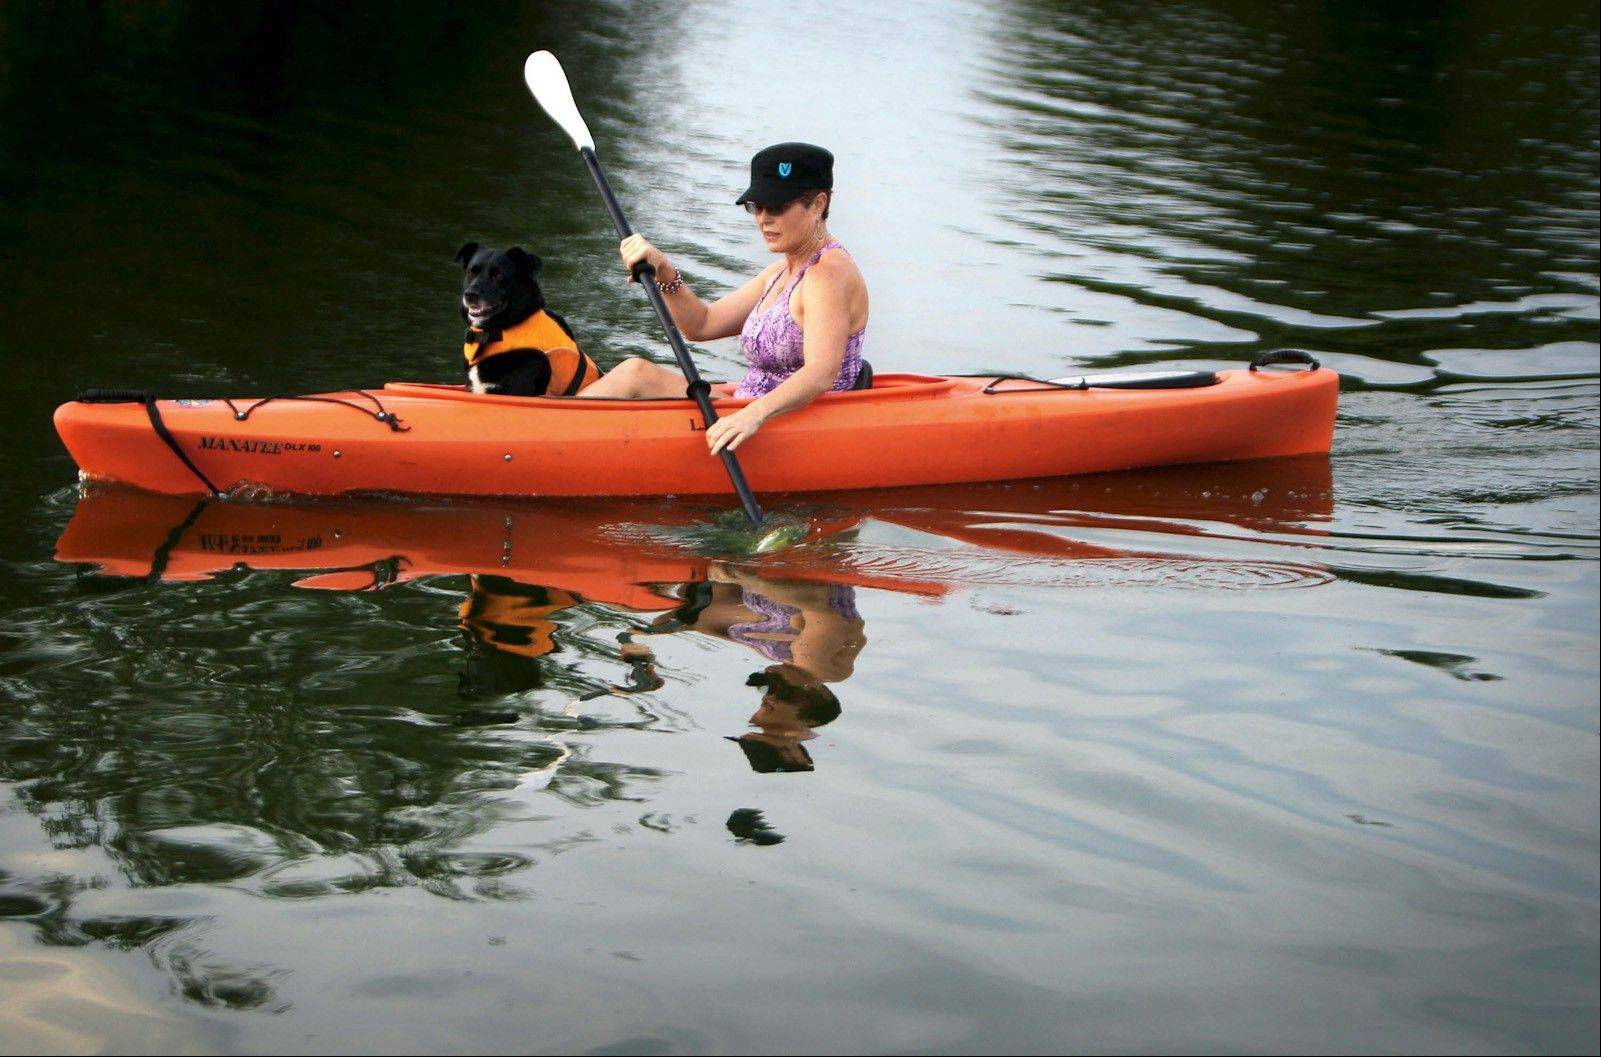 Sharon King kayaks on Patriot Lake at Shelby Farms in Memphis with her Lab-border-collie mix, Ashok. King said she mostly runs for exercise, but has turned to kayaking to work her upper body and core.